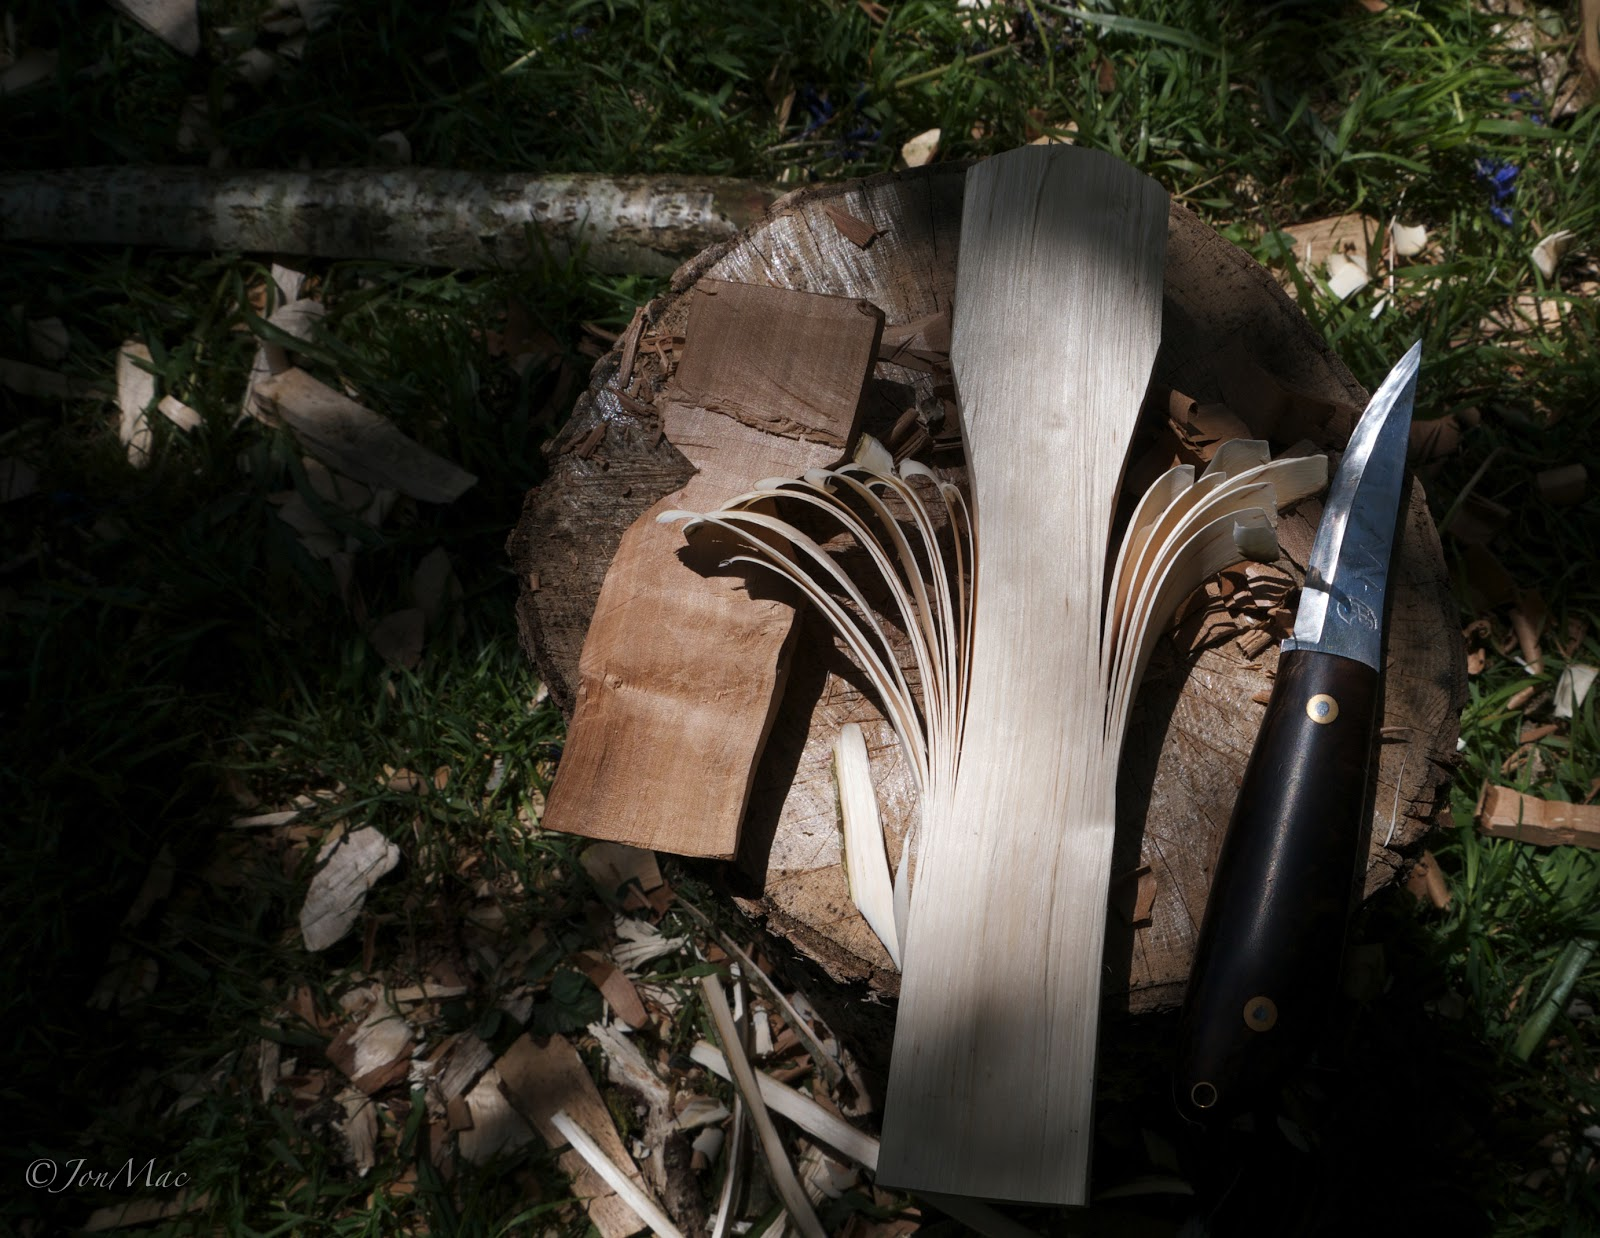 spoon blank+bushcraft knife+machris bushcraft knife